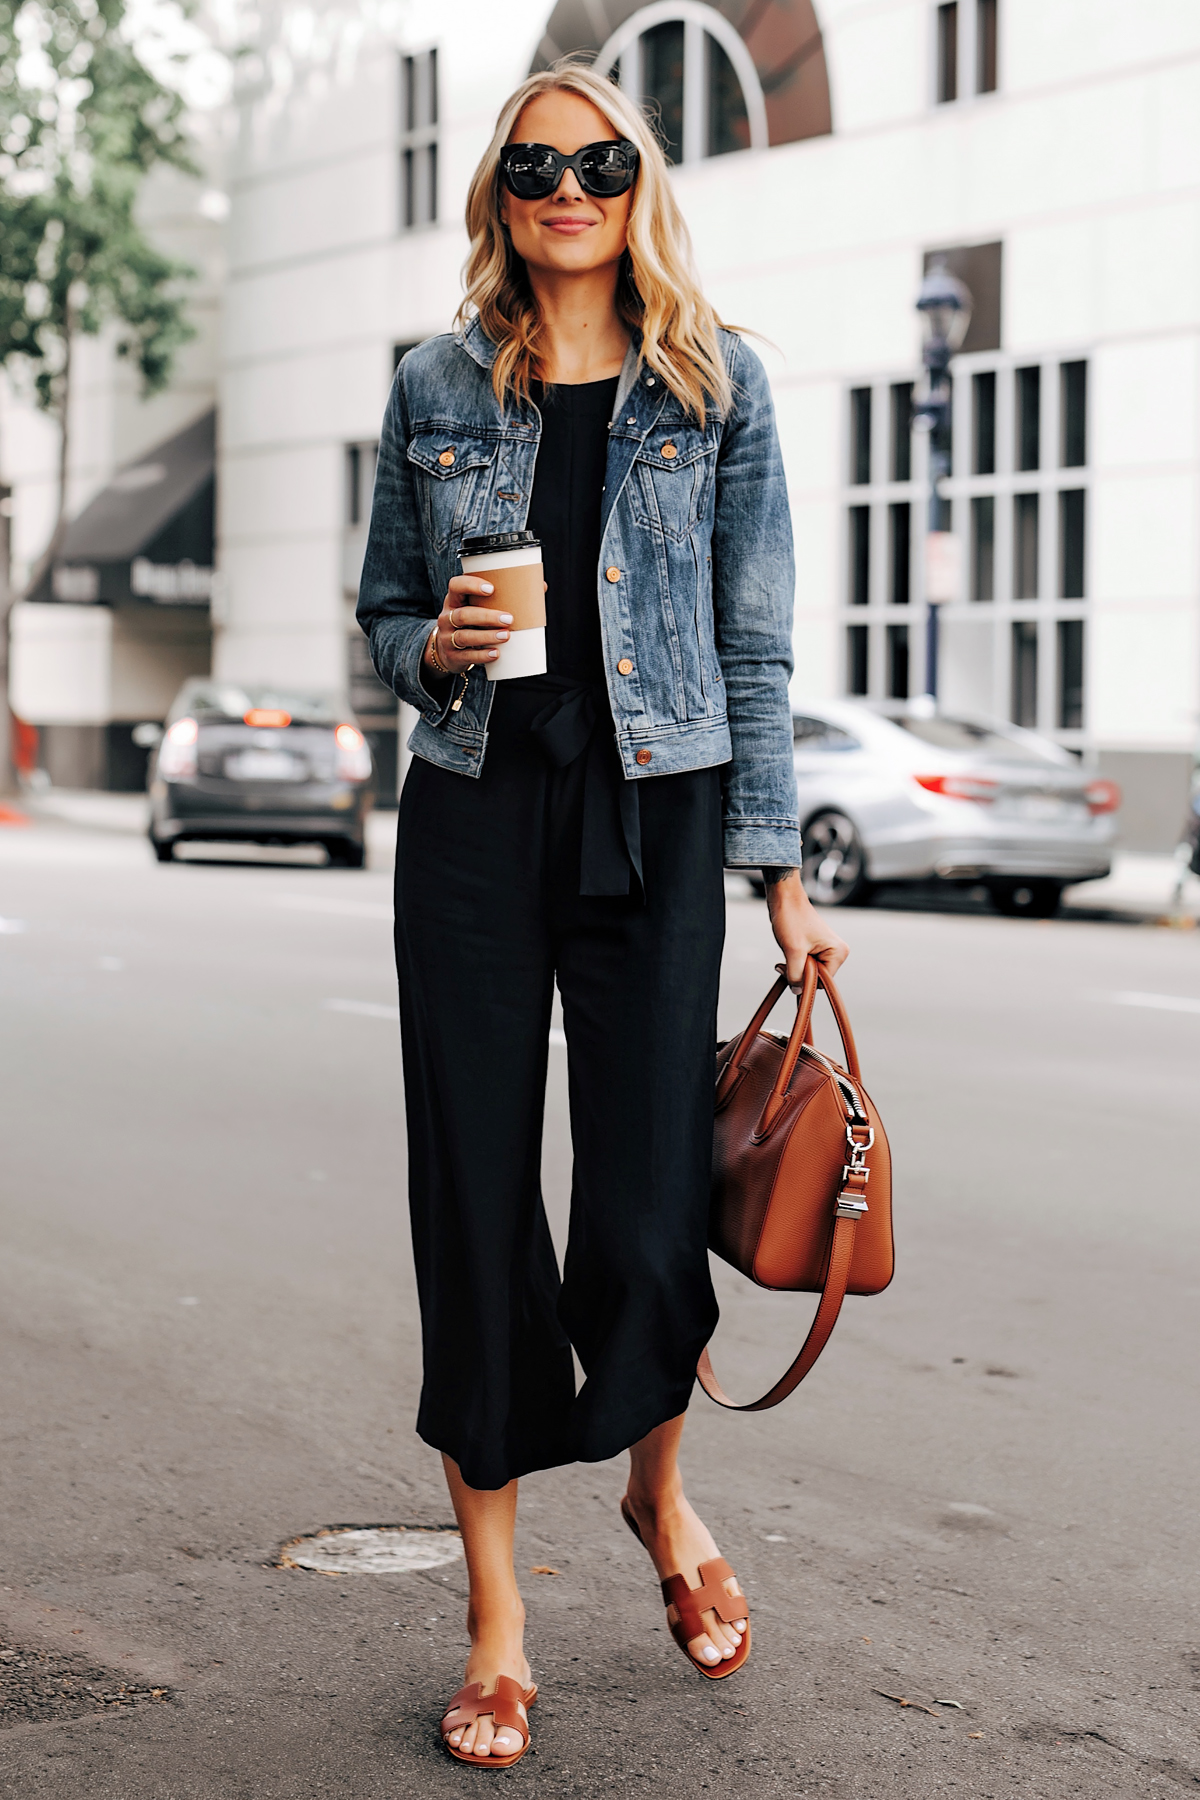 Blonde Woman Wearing Everlane Black Jumpsuit Denim Jacket Brown Sandals Brown Tote Fashion Jackson San Diego Fashion Blogger Street Style